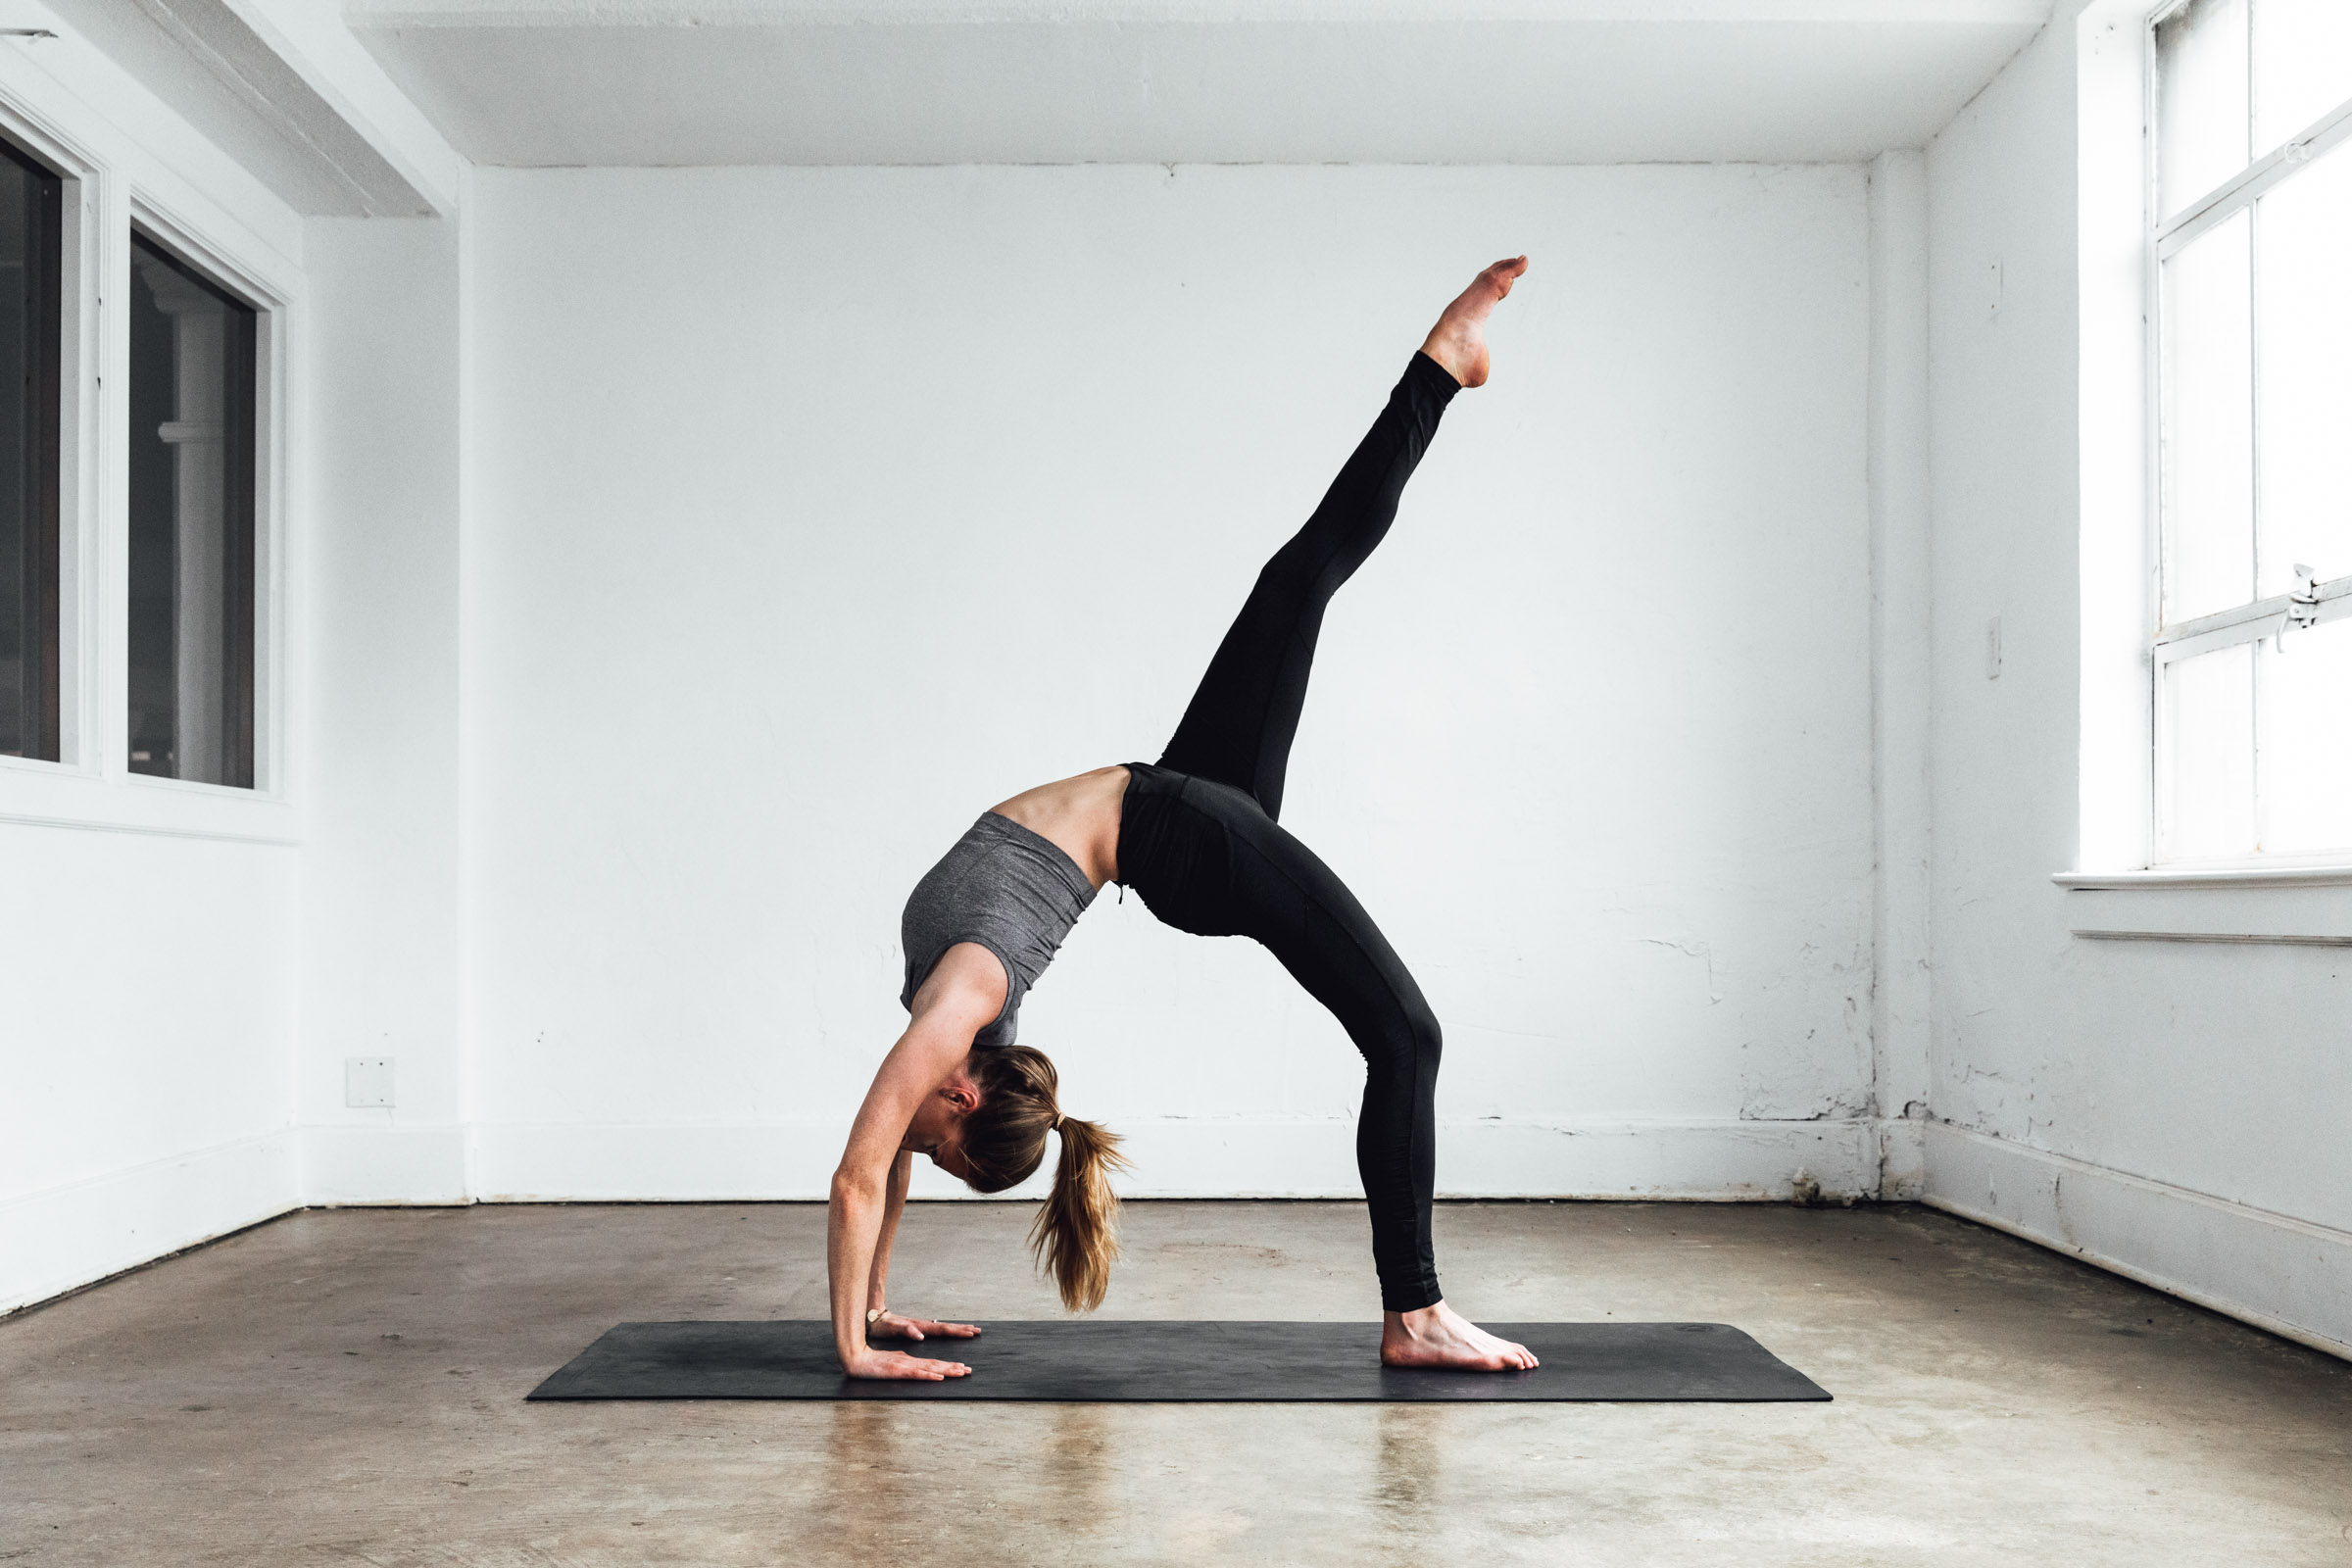 Different Kinds of Yoga Poses And Their Benefits